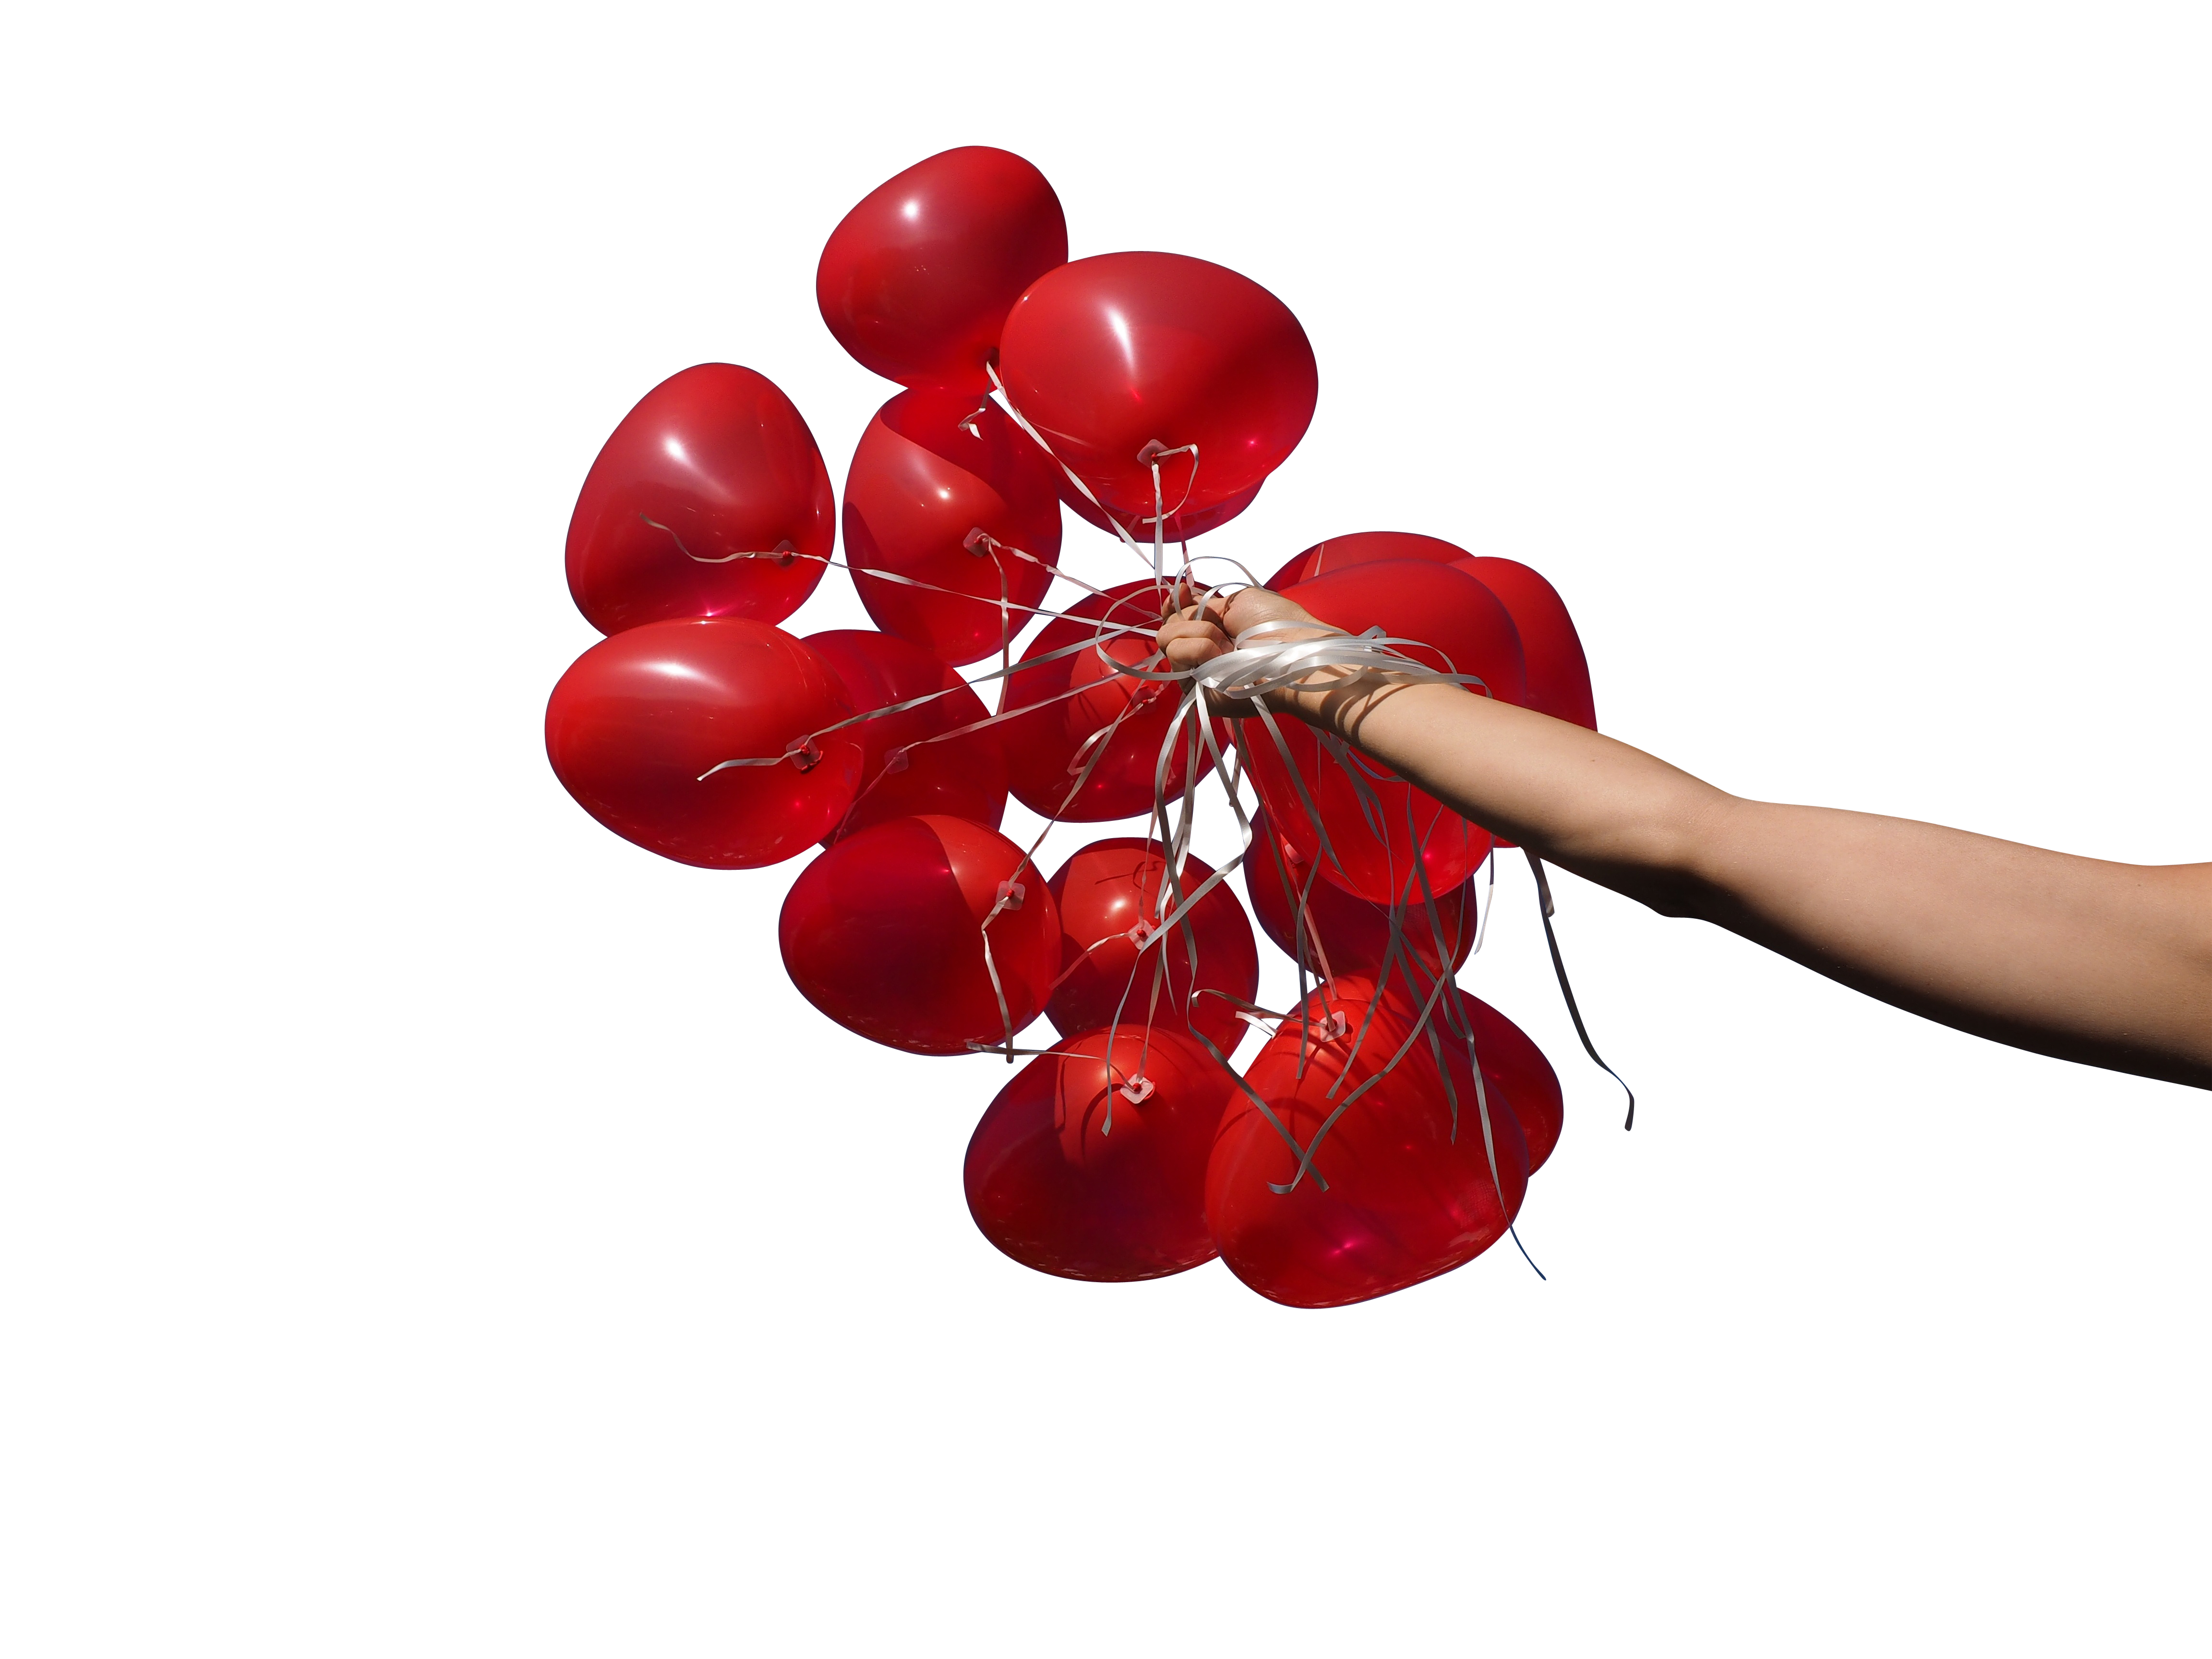 Red Heart Balloons in Hand